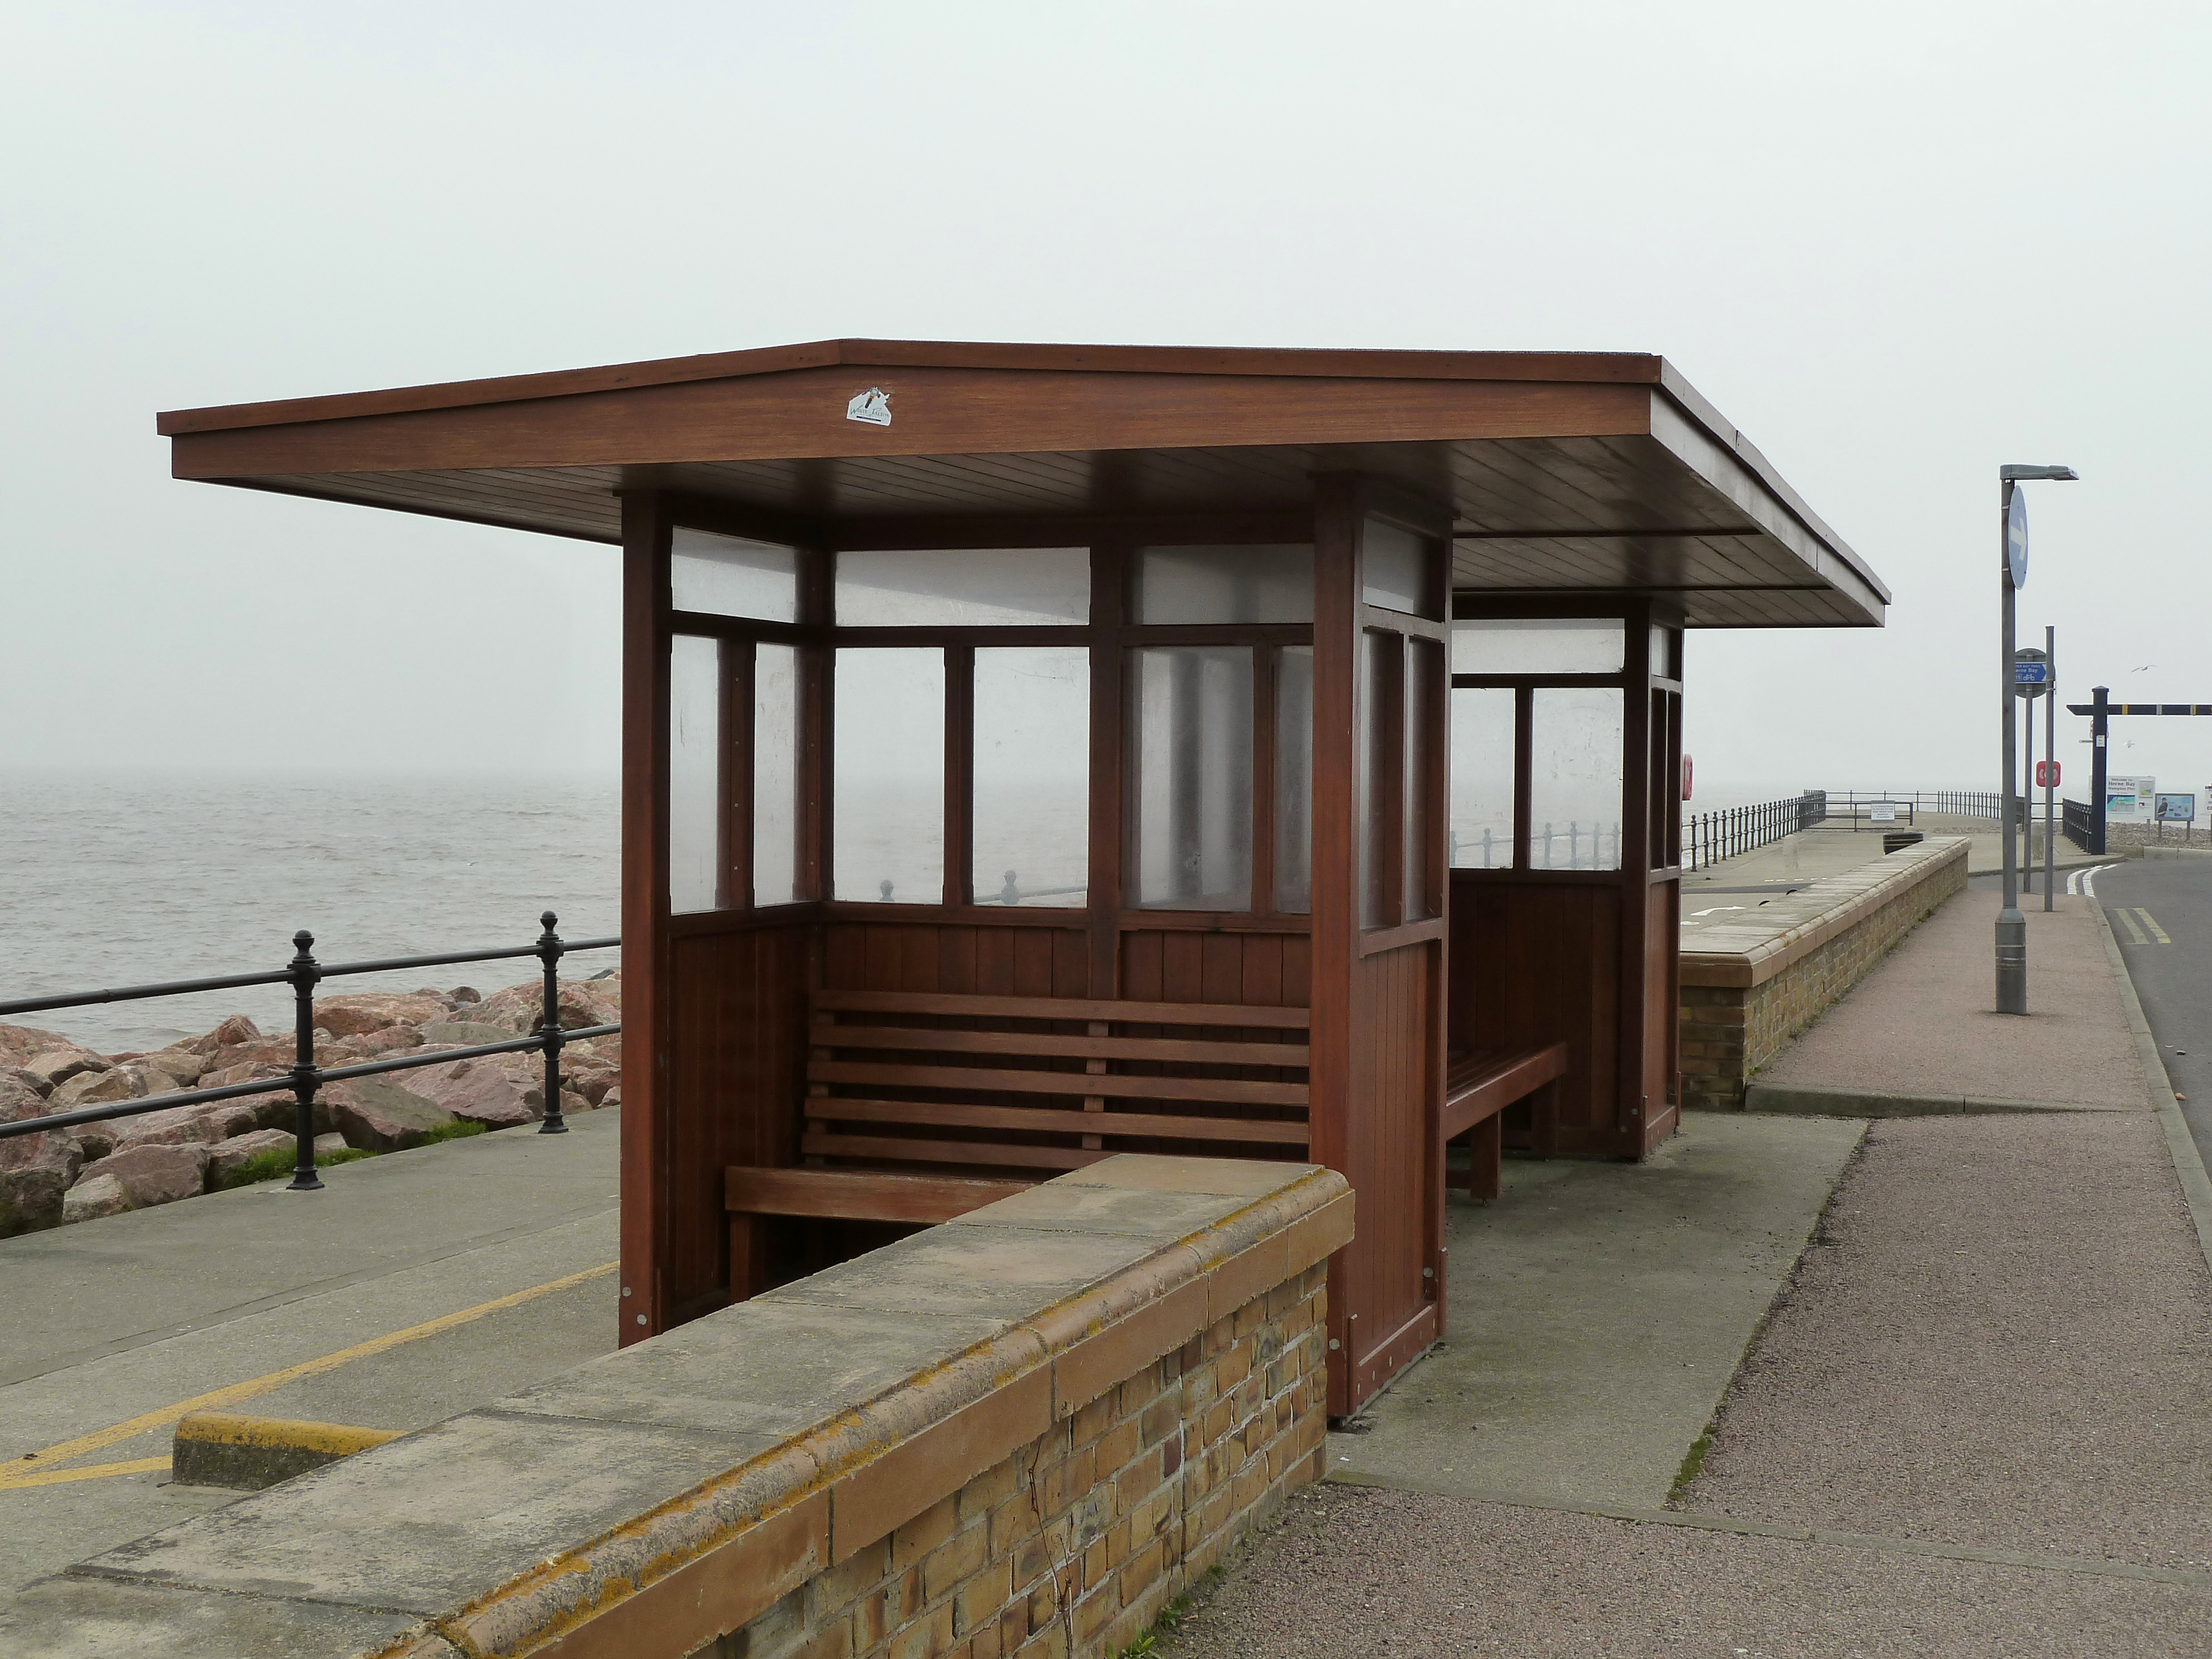 Wood Bus Shelter : The gallery for gt wooden bus stop shelter